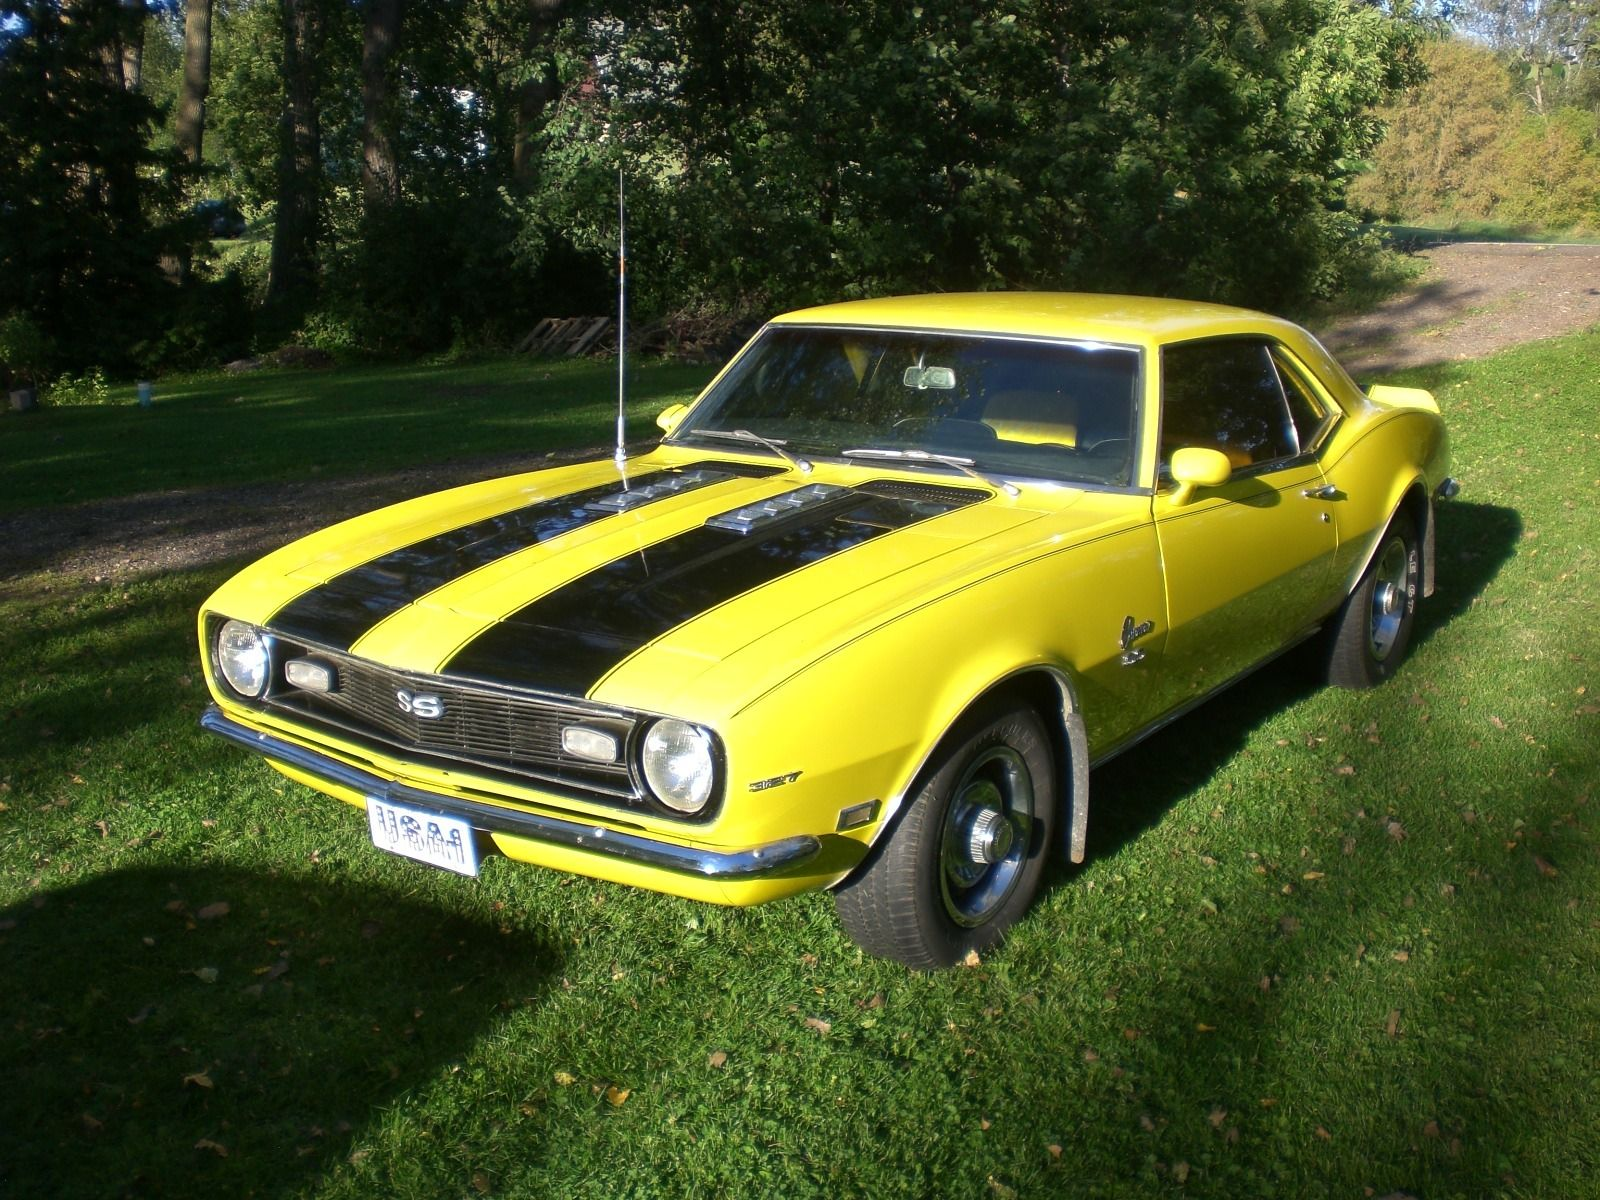 1968 chevy camaro ss restored in 1980 with gm panels not chinese for sale in sauk centre. Black Bedroom Furniture Sets. Home Design Ideas